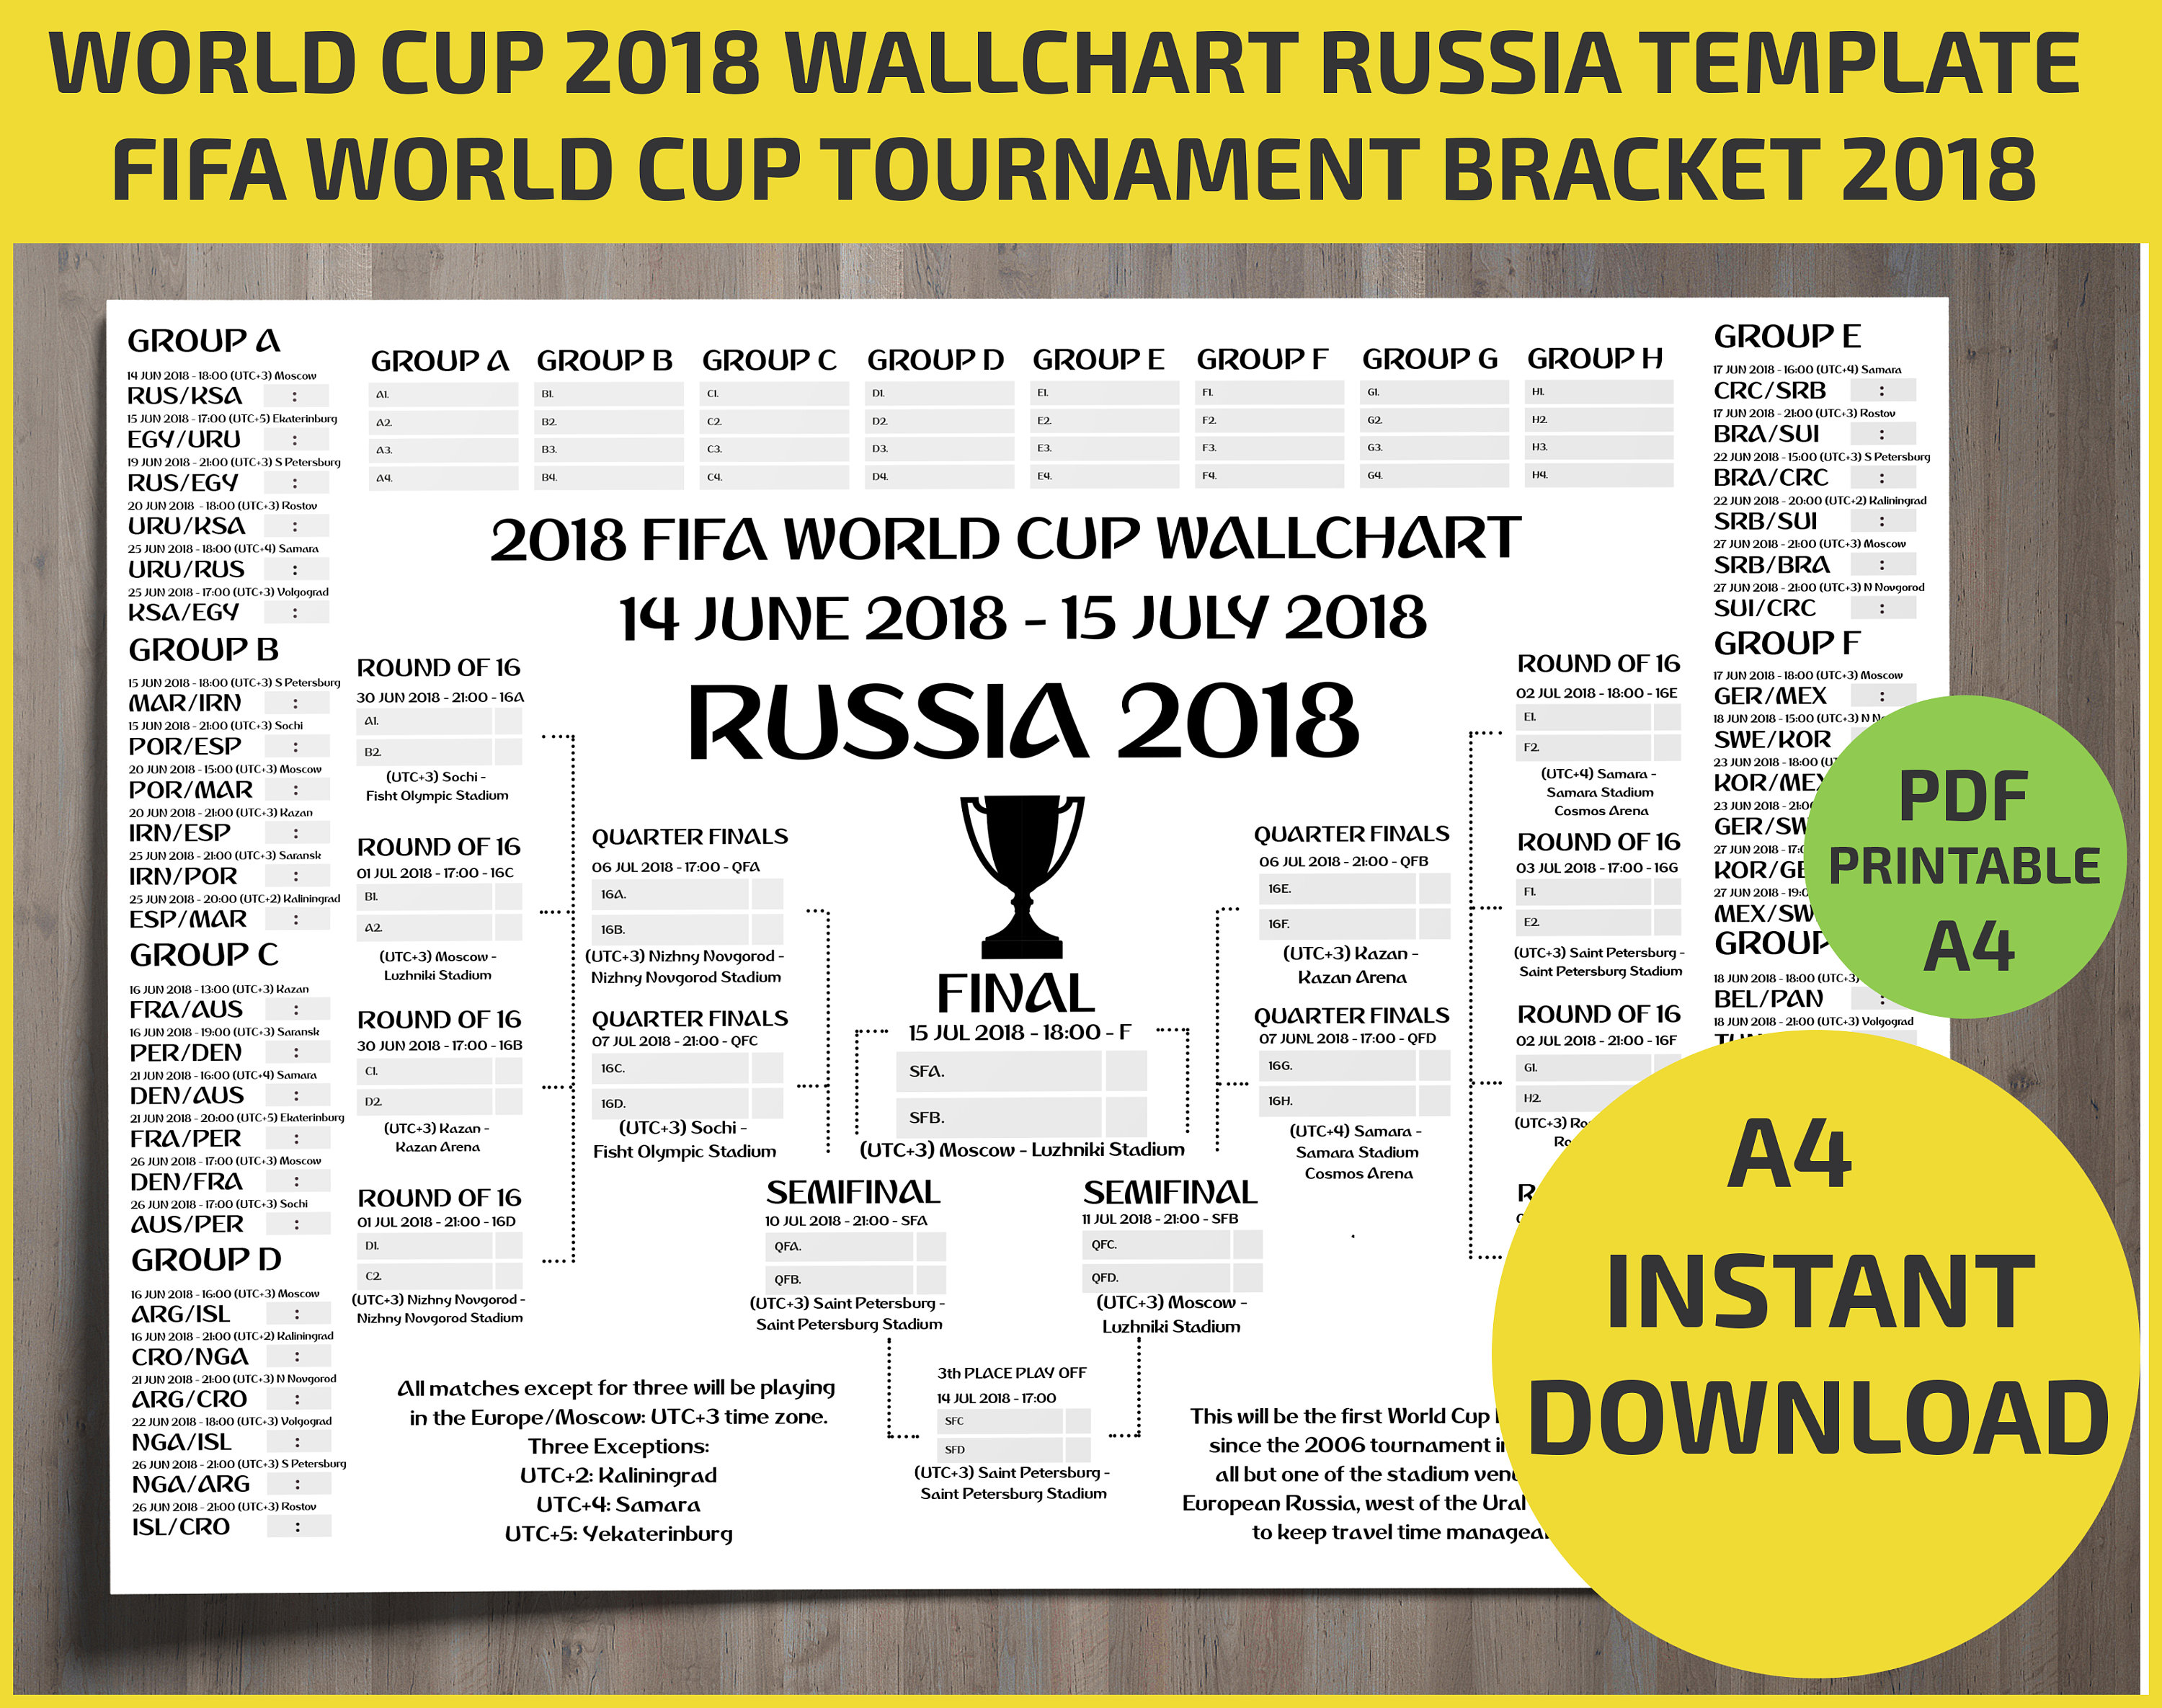 World Cup 2018 Schedule Utc